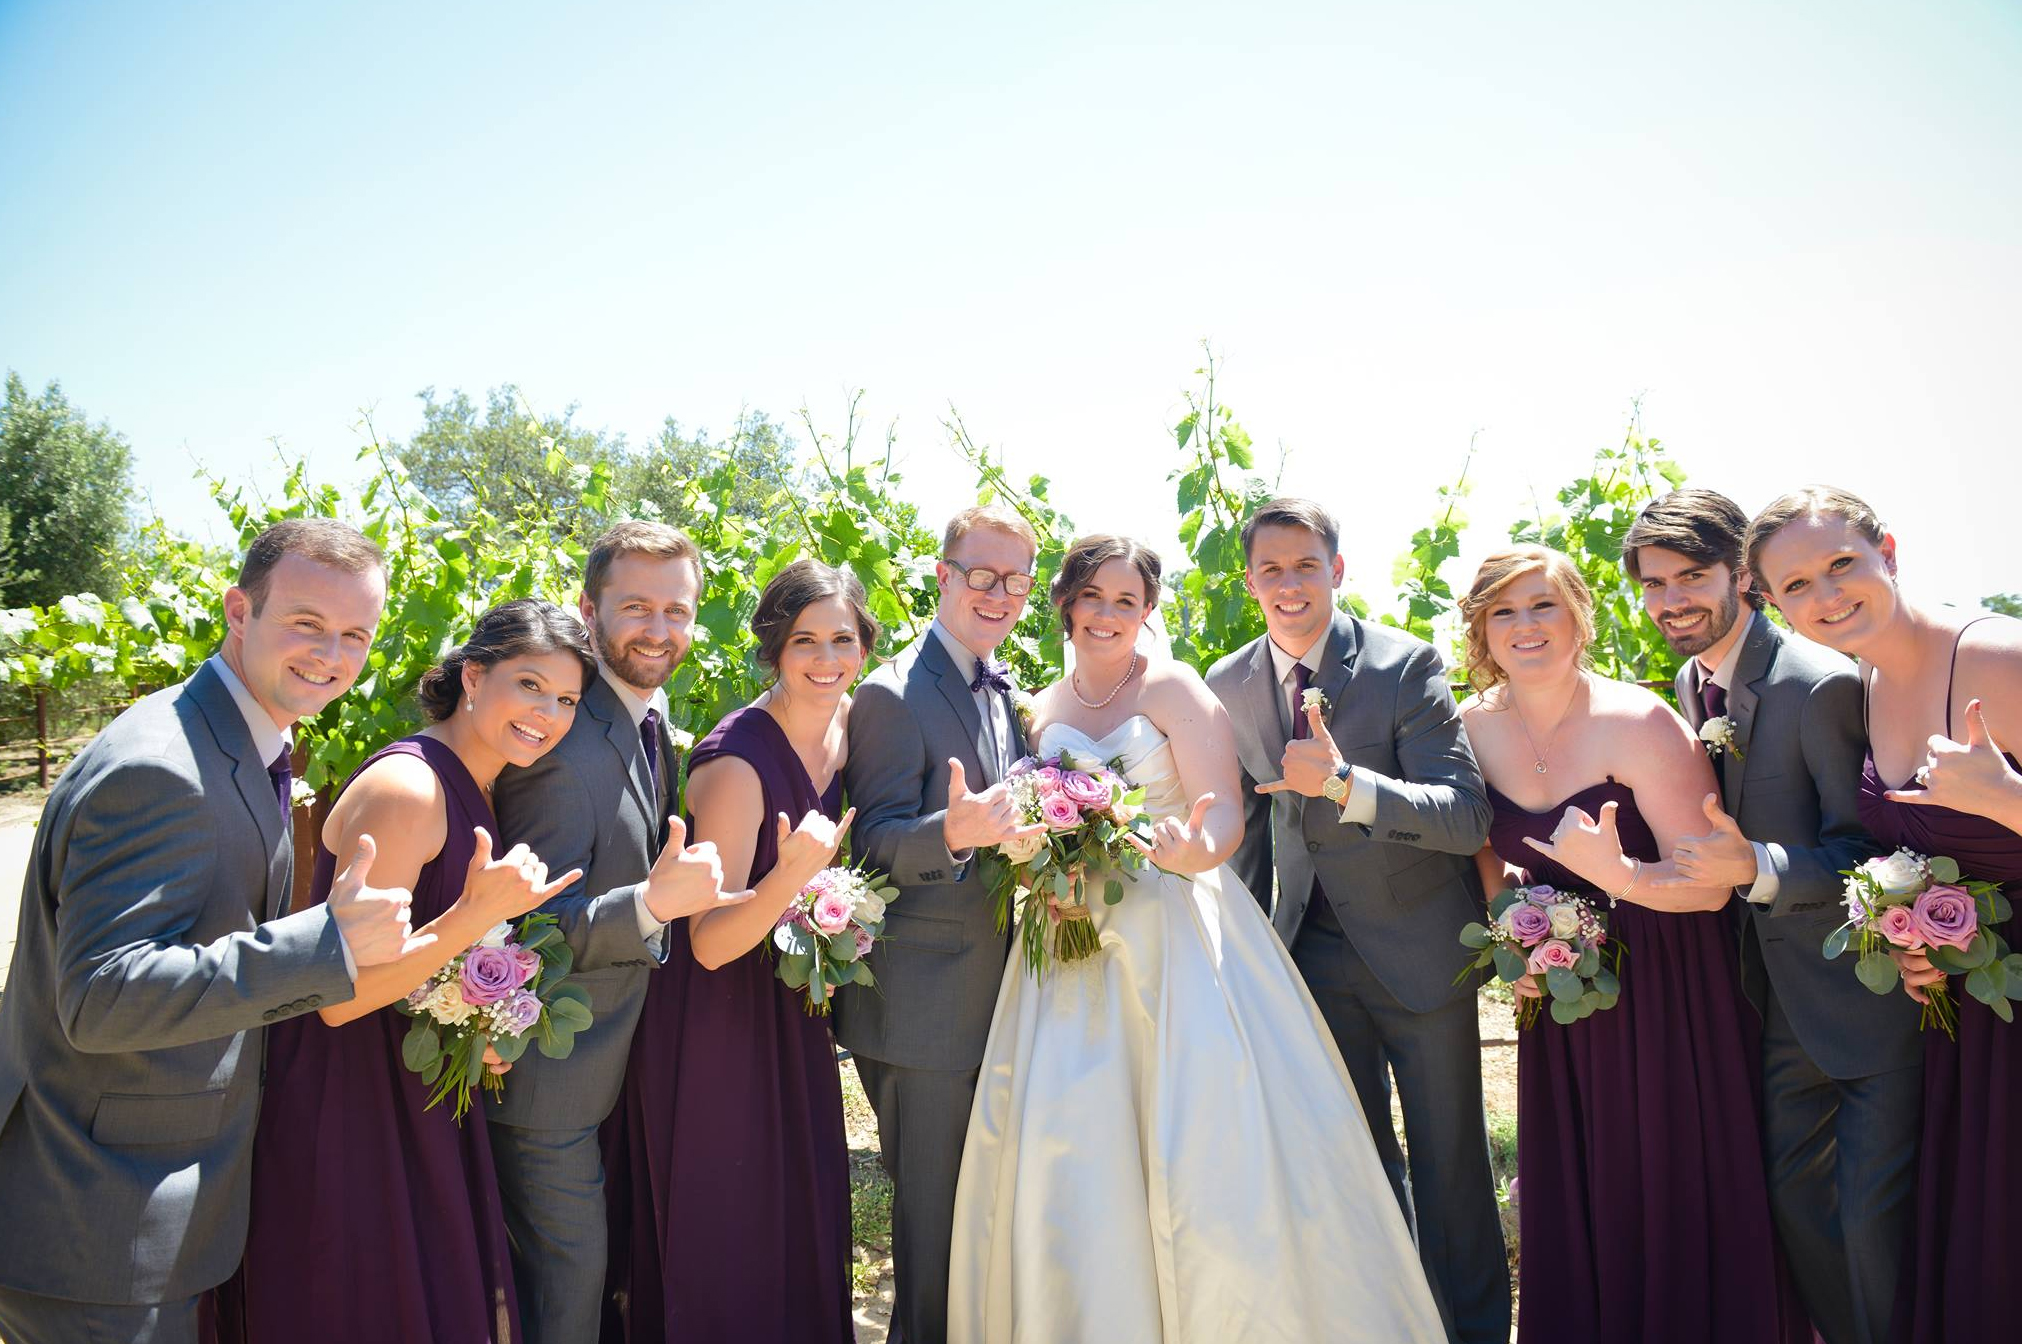 Purple and Gray Wedding Party Pose in the Vineyards